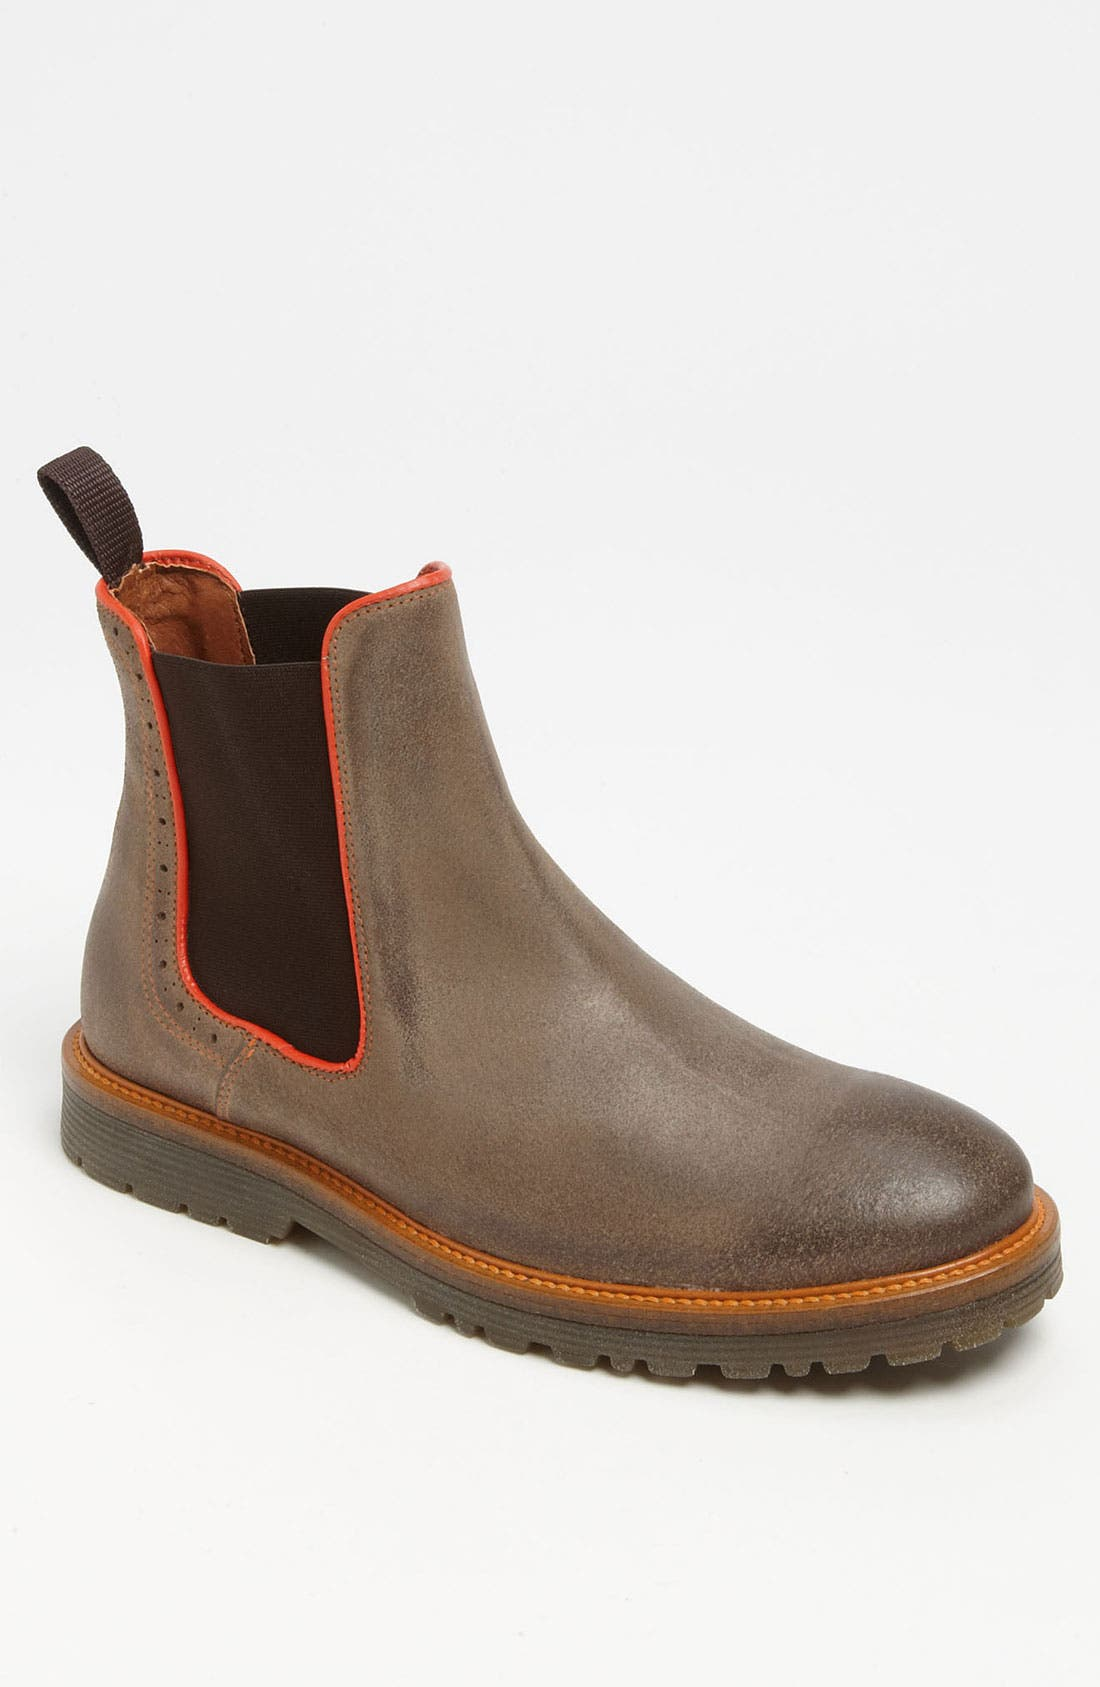 Alternate Image 1 Selected - Kenneth Cole Reaction 'Tell a Tail' Chelsea Boot (Online Only)